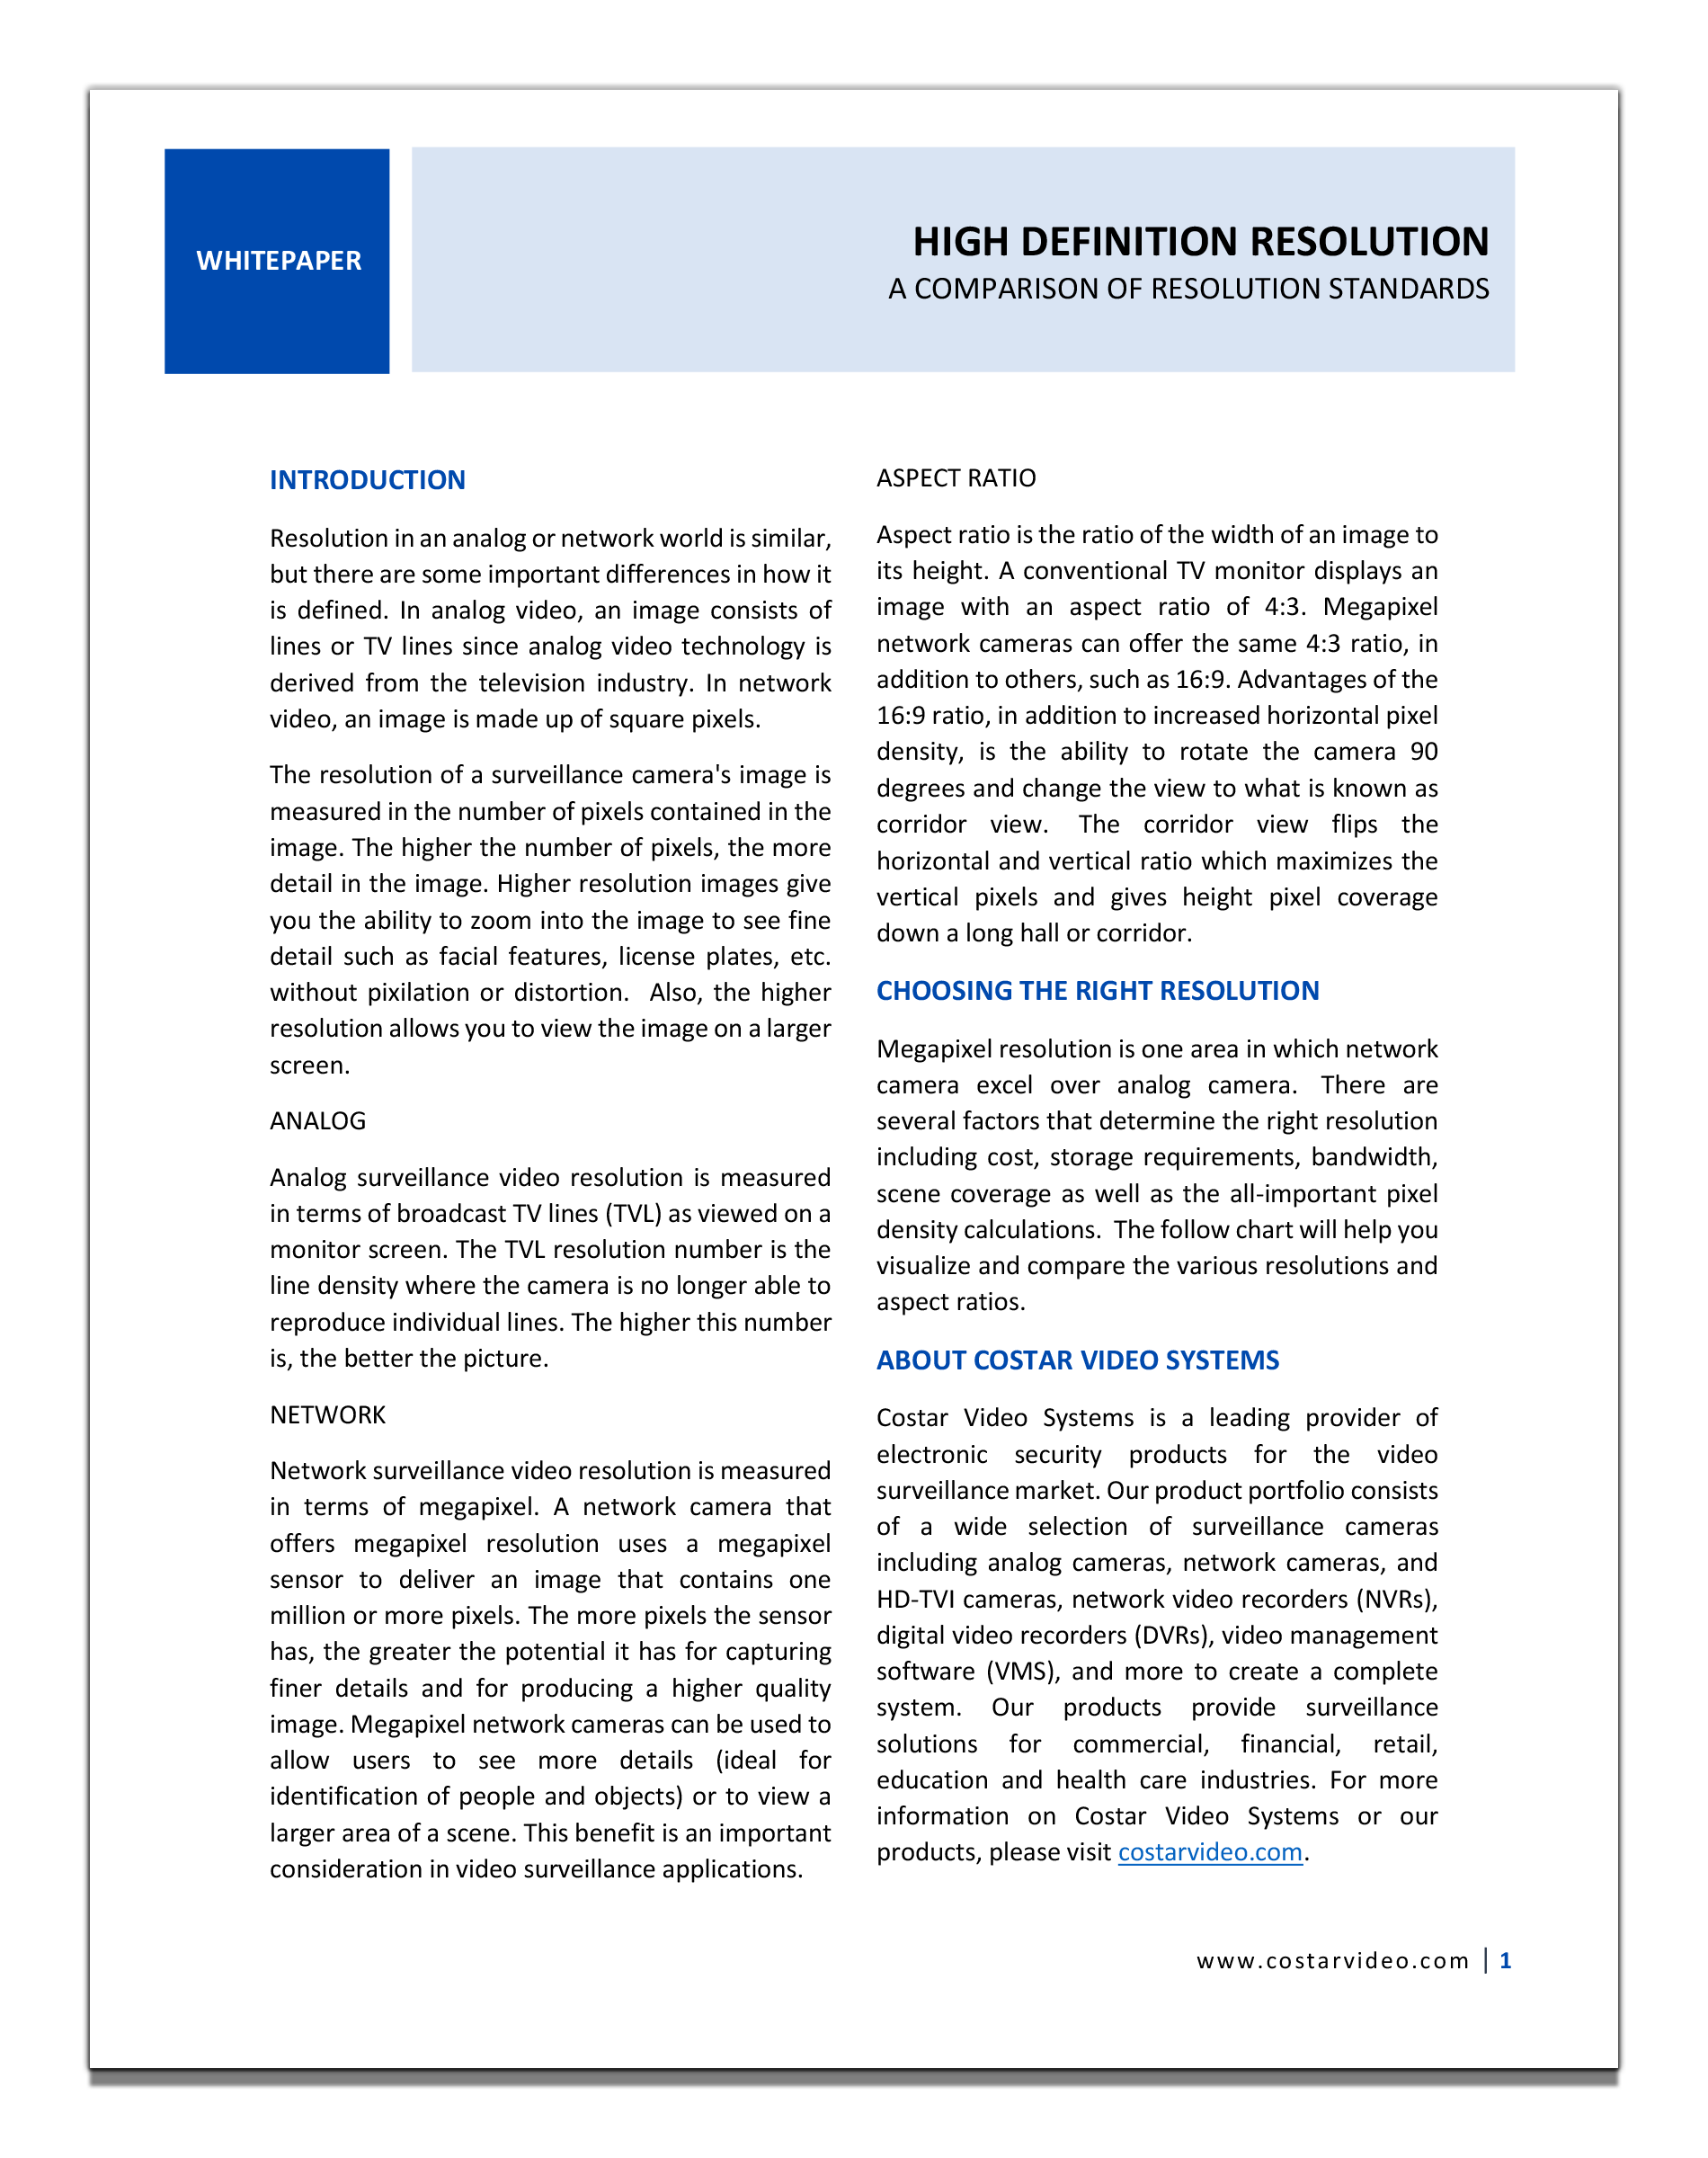 High_Definition_Resolution_Whitepaper_Cover_Page.png